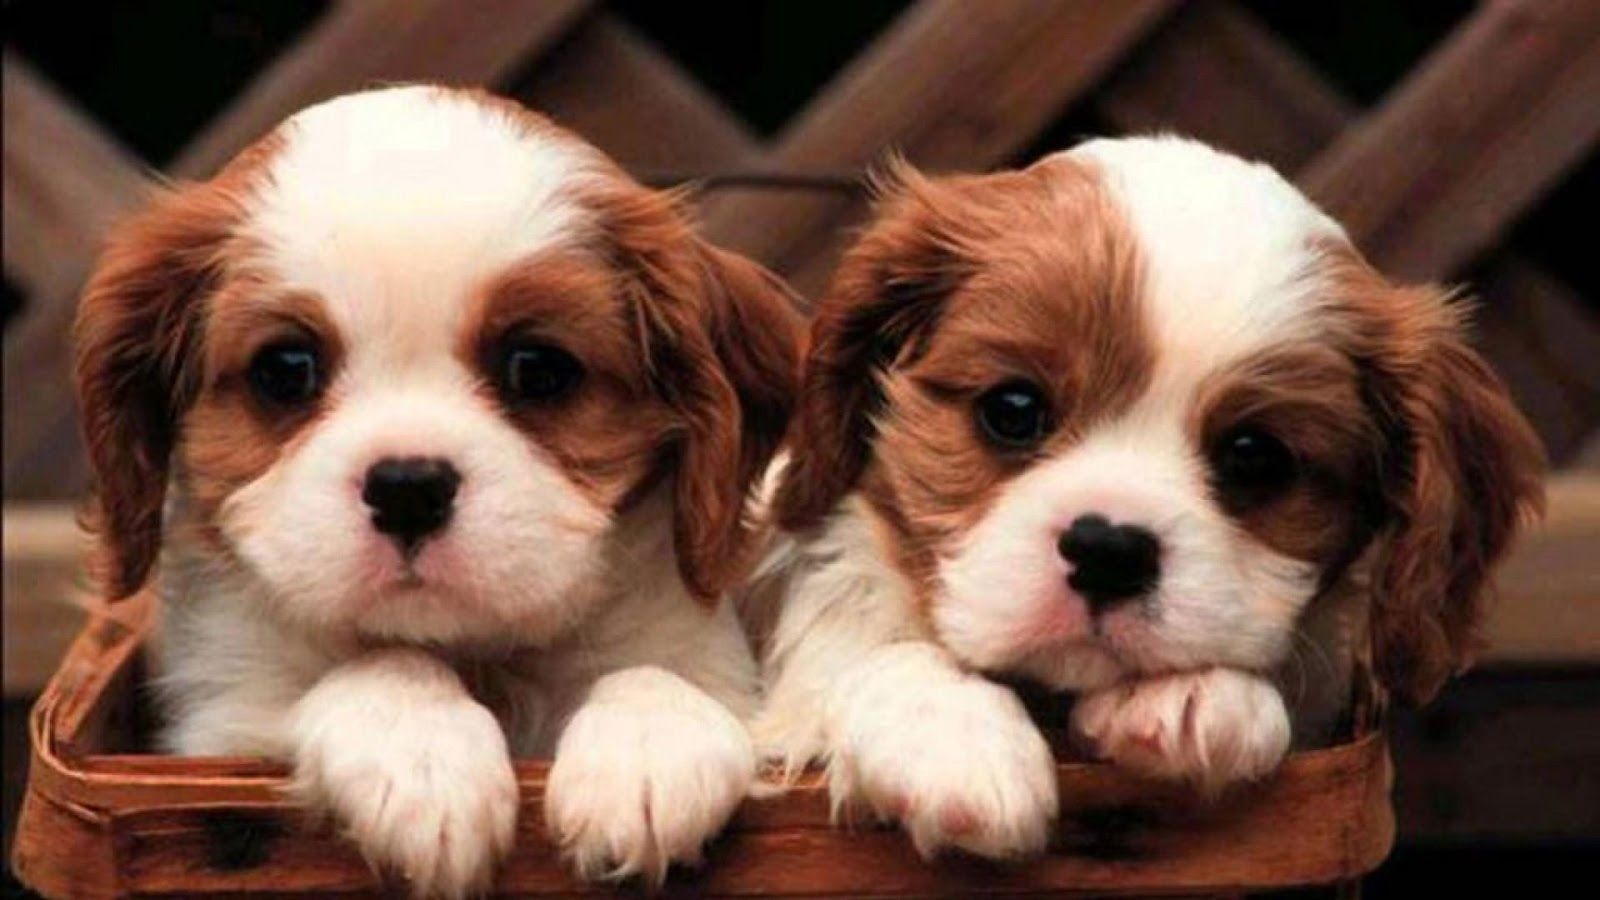 Download Free Hd Cute Dog Live Wallpaper The Quotes Land King Charles Cavalier Spaniel Puppy Puppies Cute Puppy Wallpaper